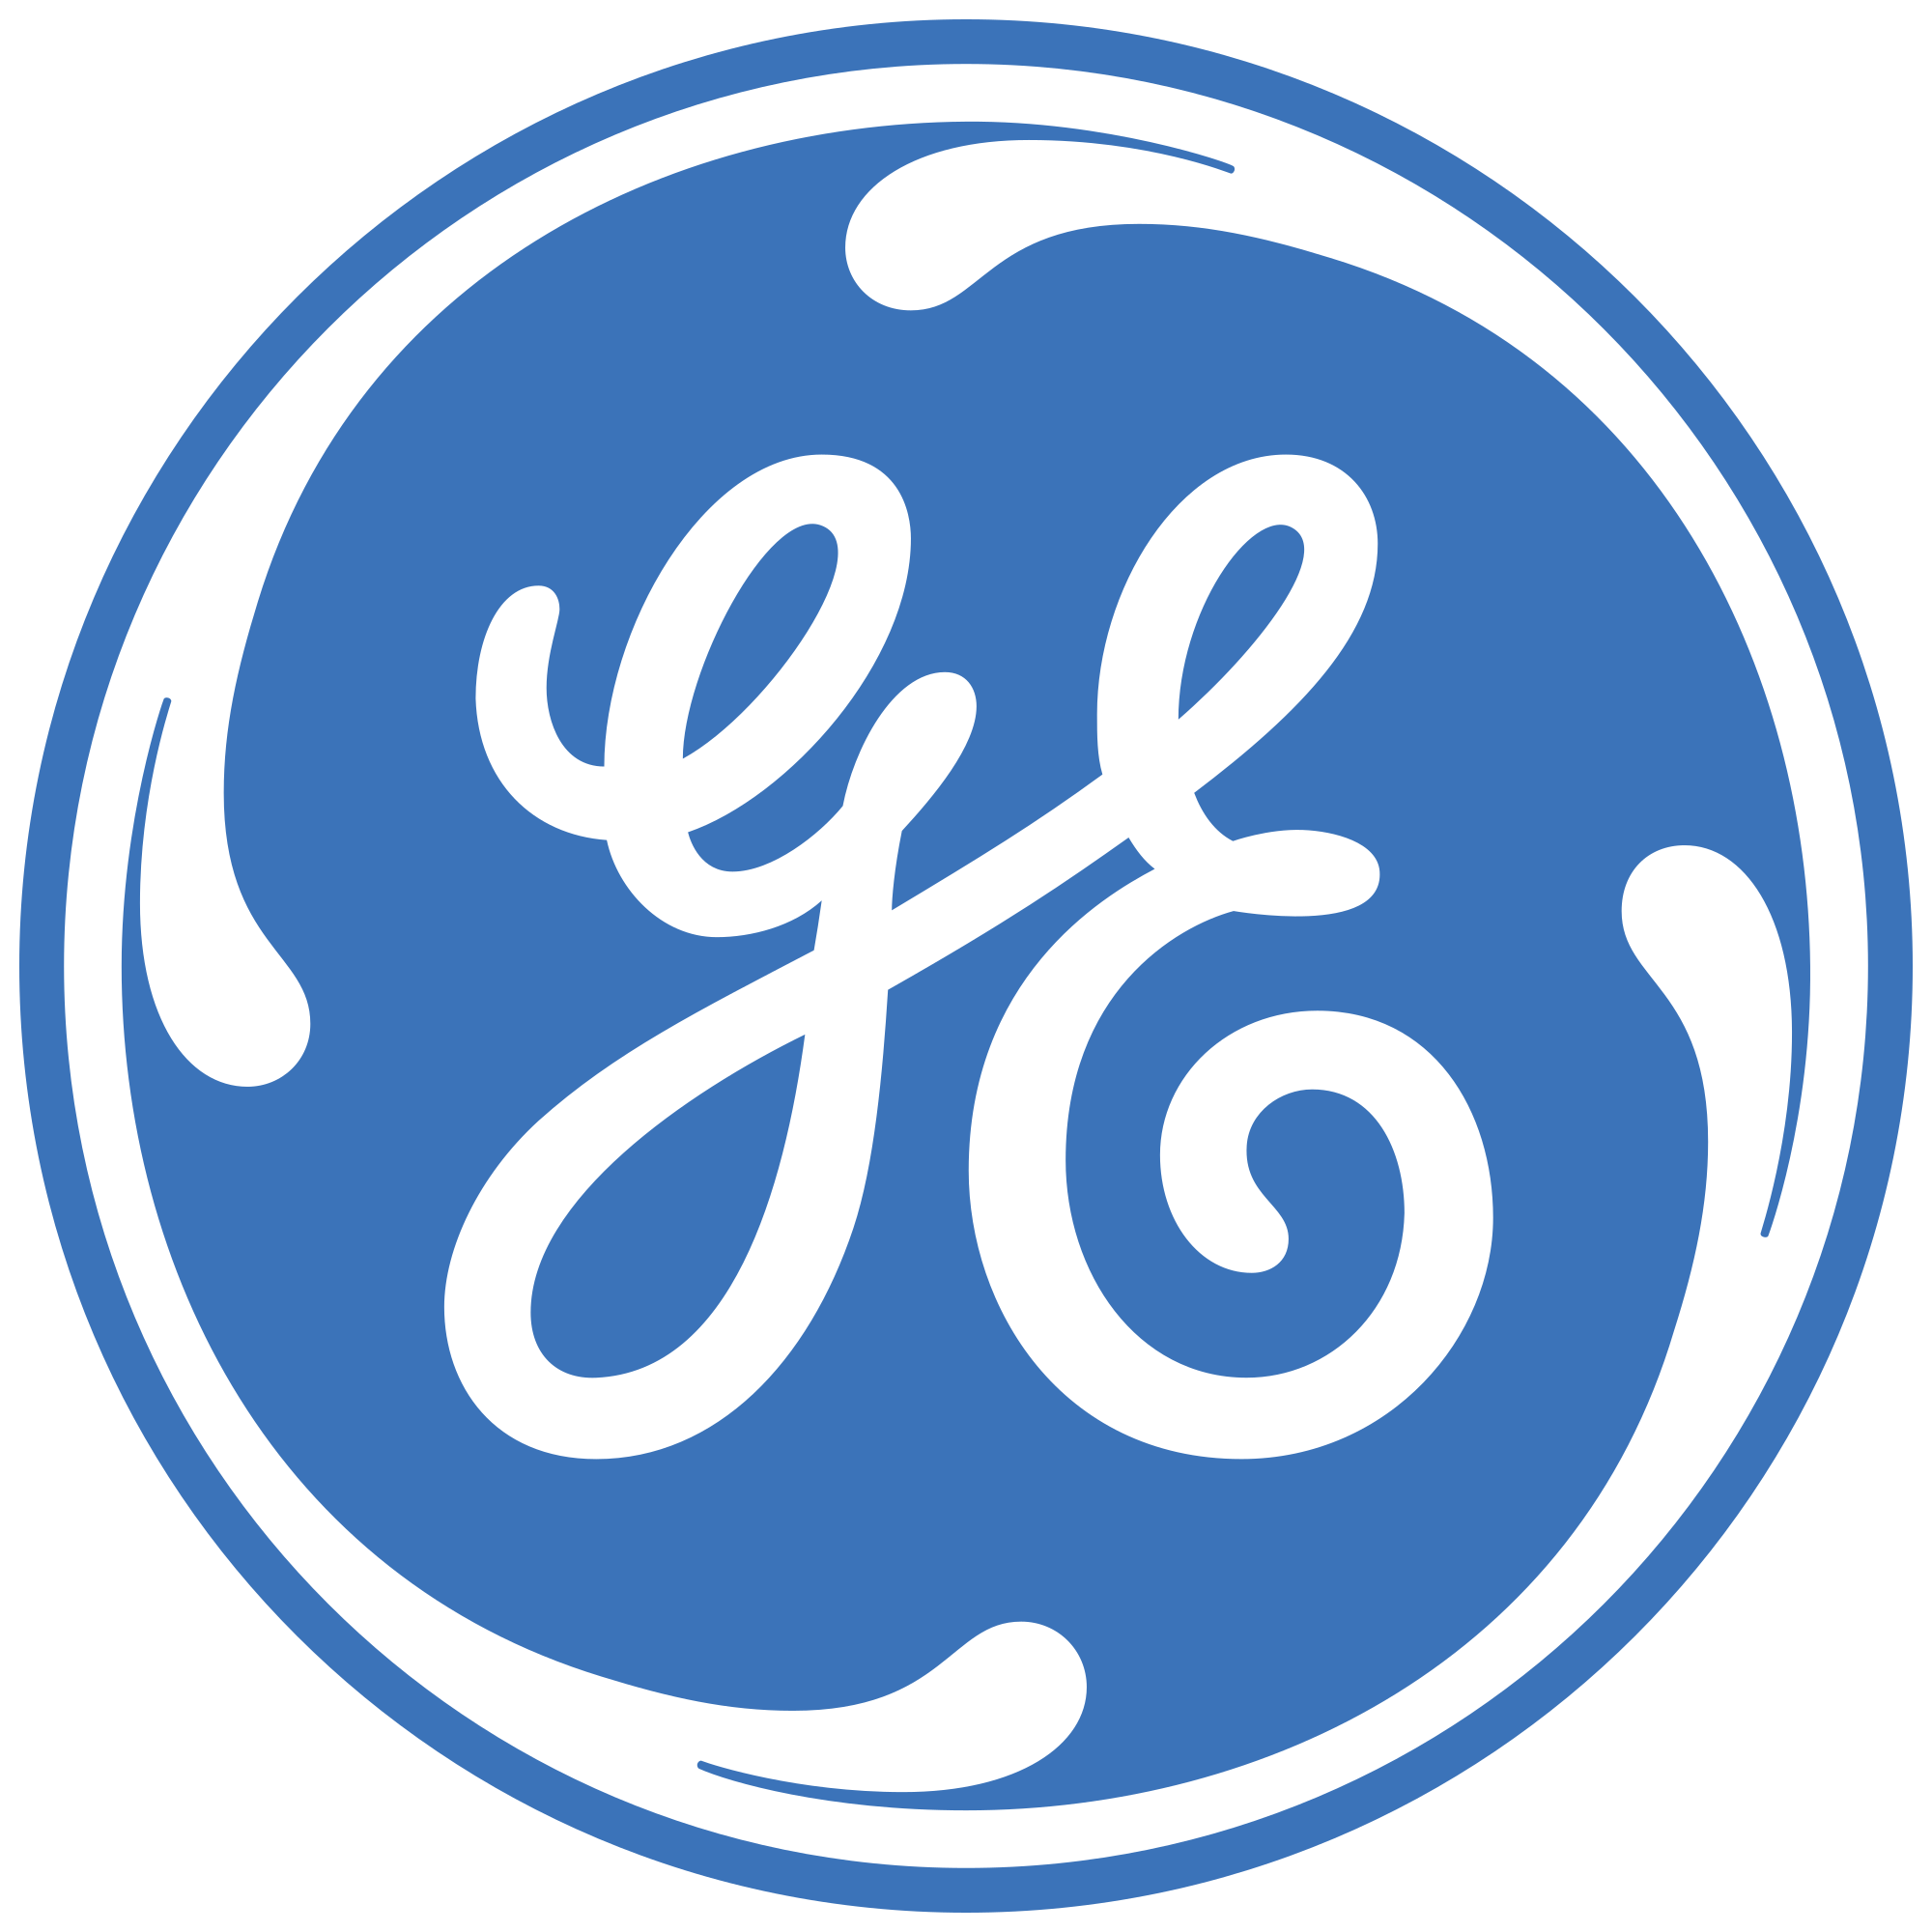 Senior Design Sponsor GE